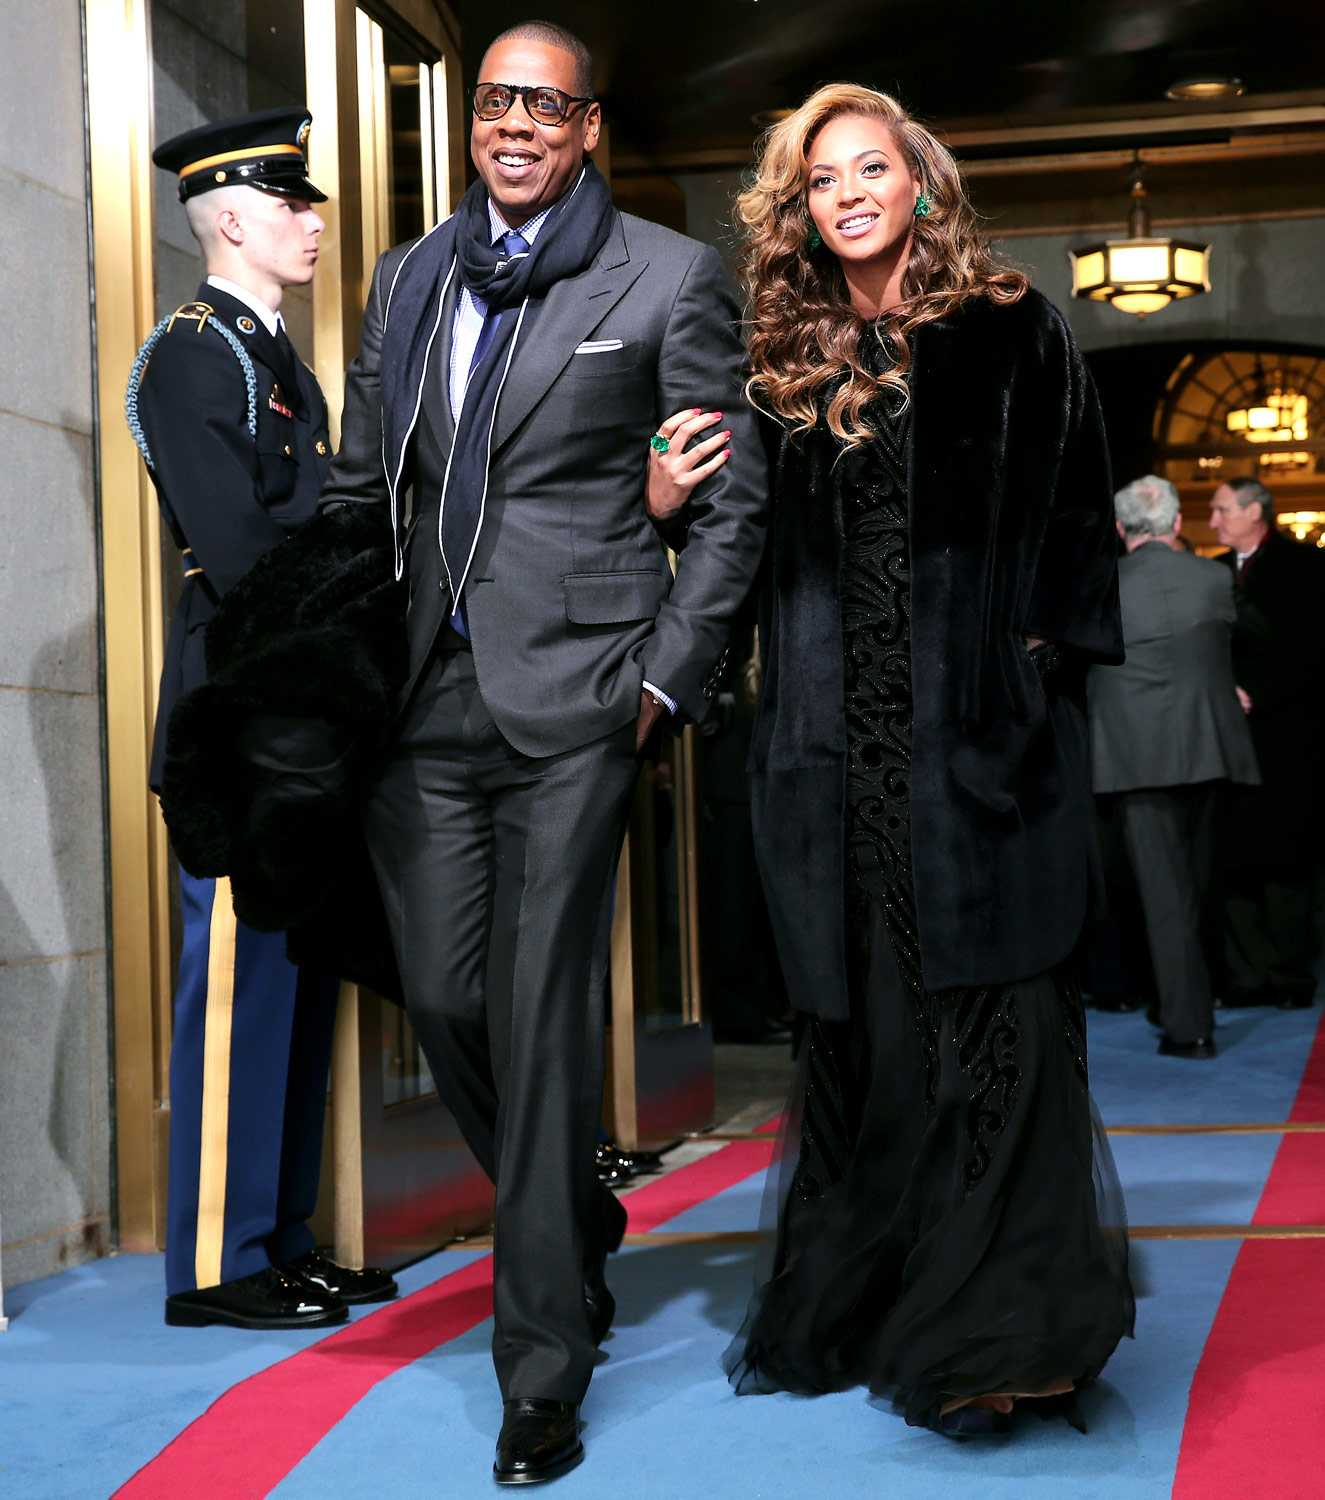 The King And Queen Of The Charts: Beyonce And Jay-Z To Perform At The Grammys